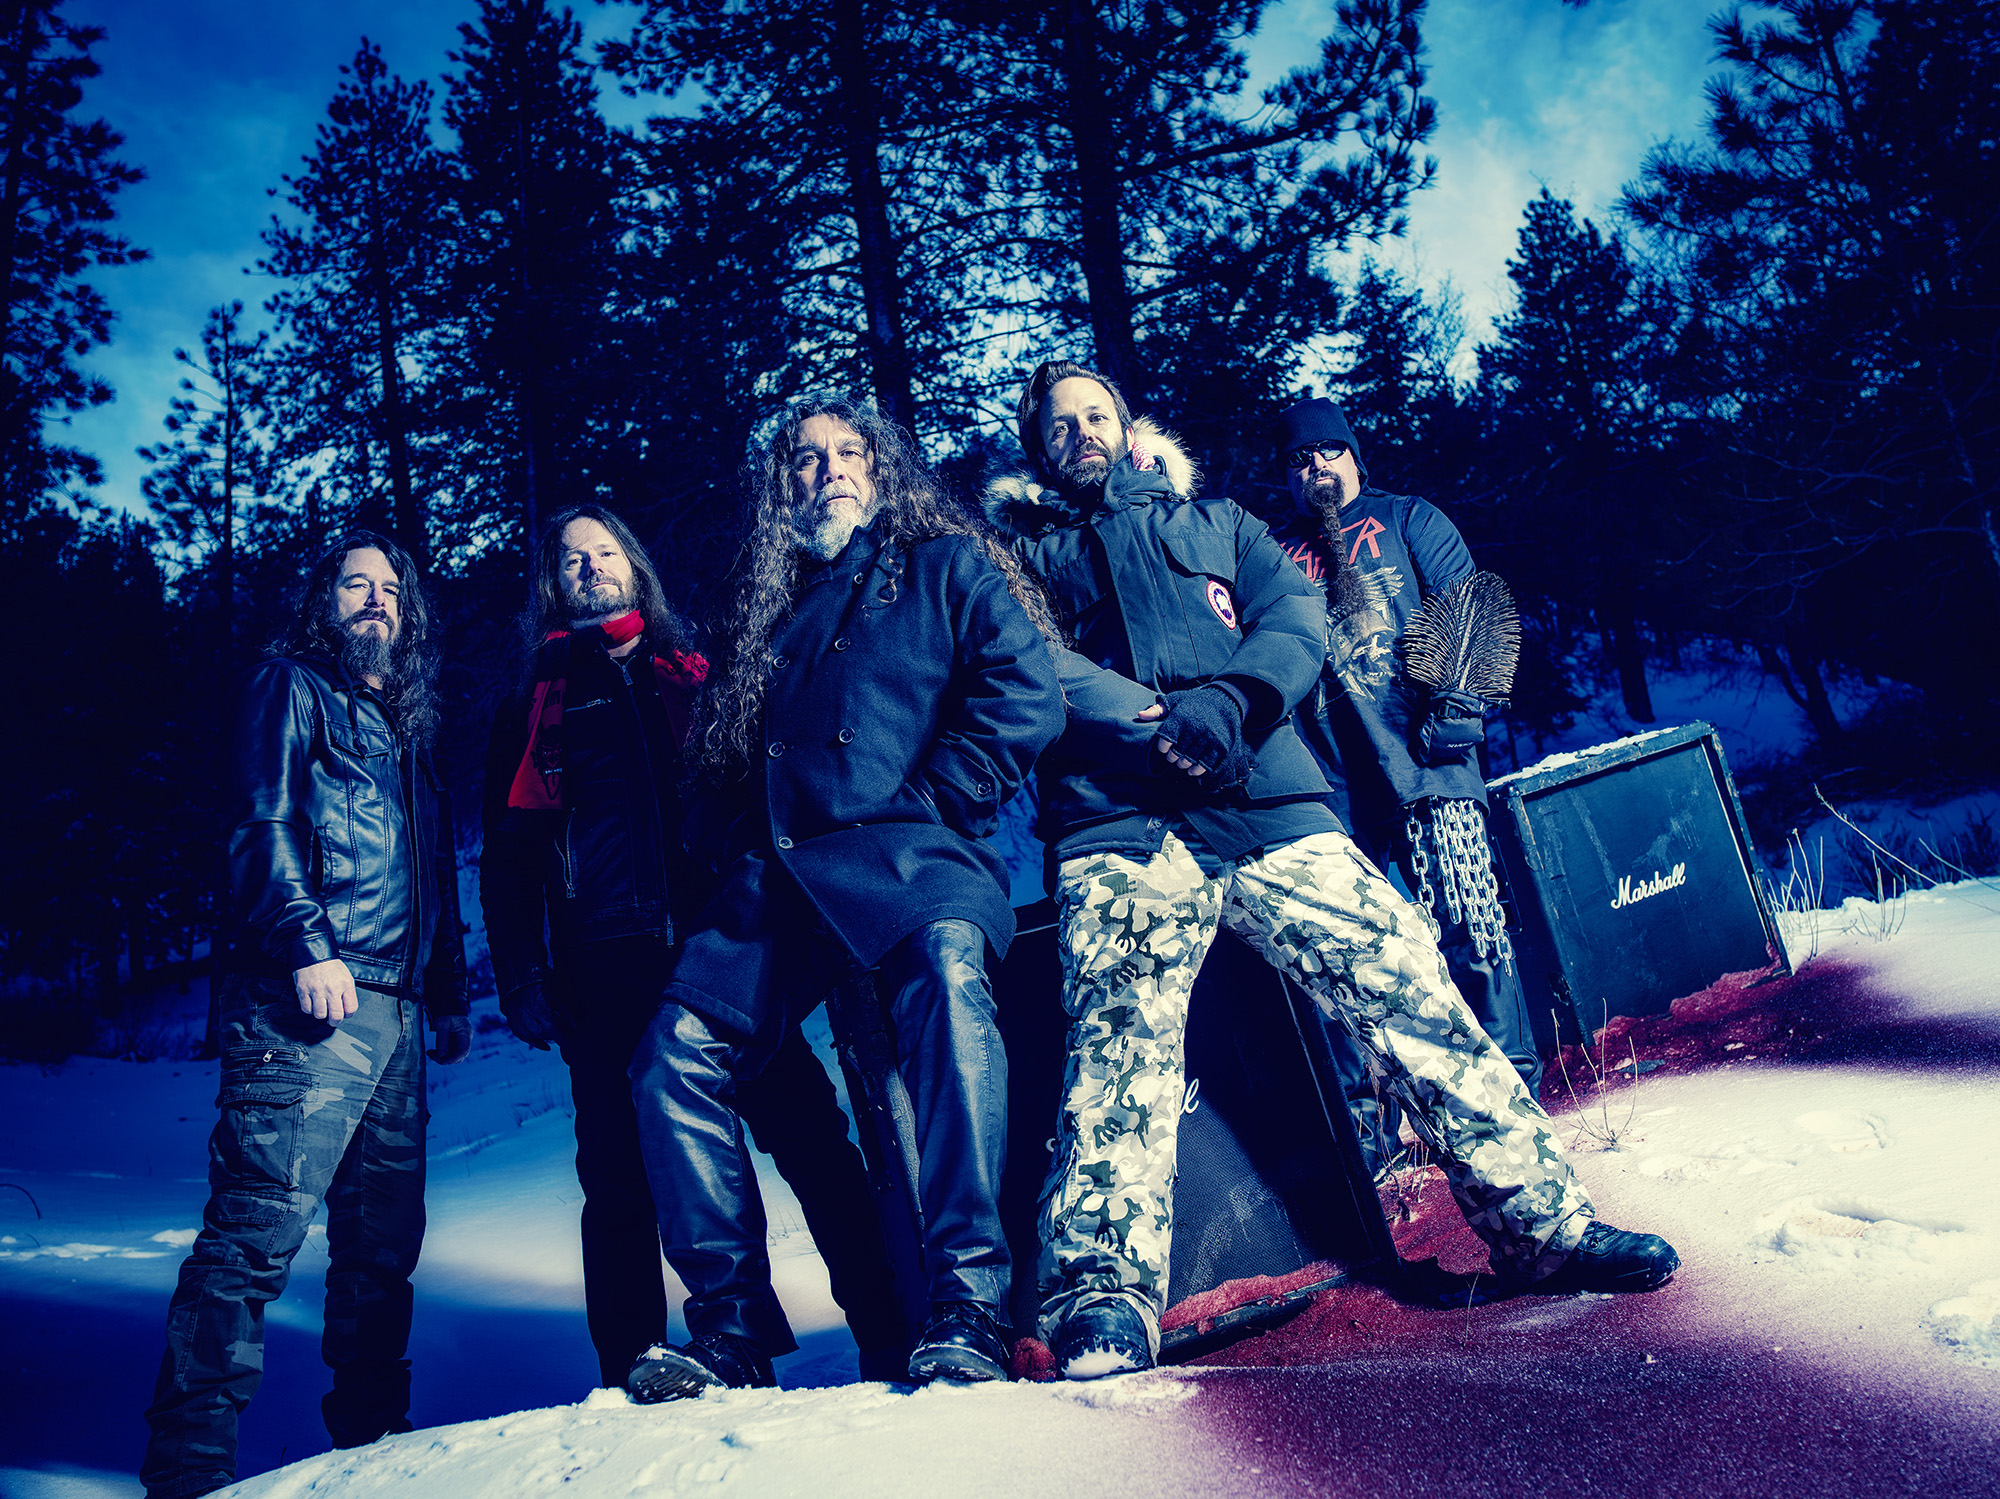 """SLAYER with director BJ McDonnell on the set of the """"Pride in Prejudice"""" video in the mountains of Wrightwood, CA, 2/2/16 L-R: Paul Bostaph, Gary Holt, Tom Araya, BJ McDonnell, Kerry King Photo credit: Martin Hauser"""